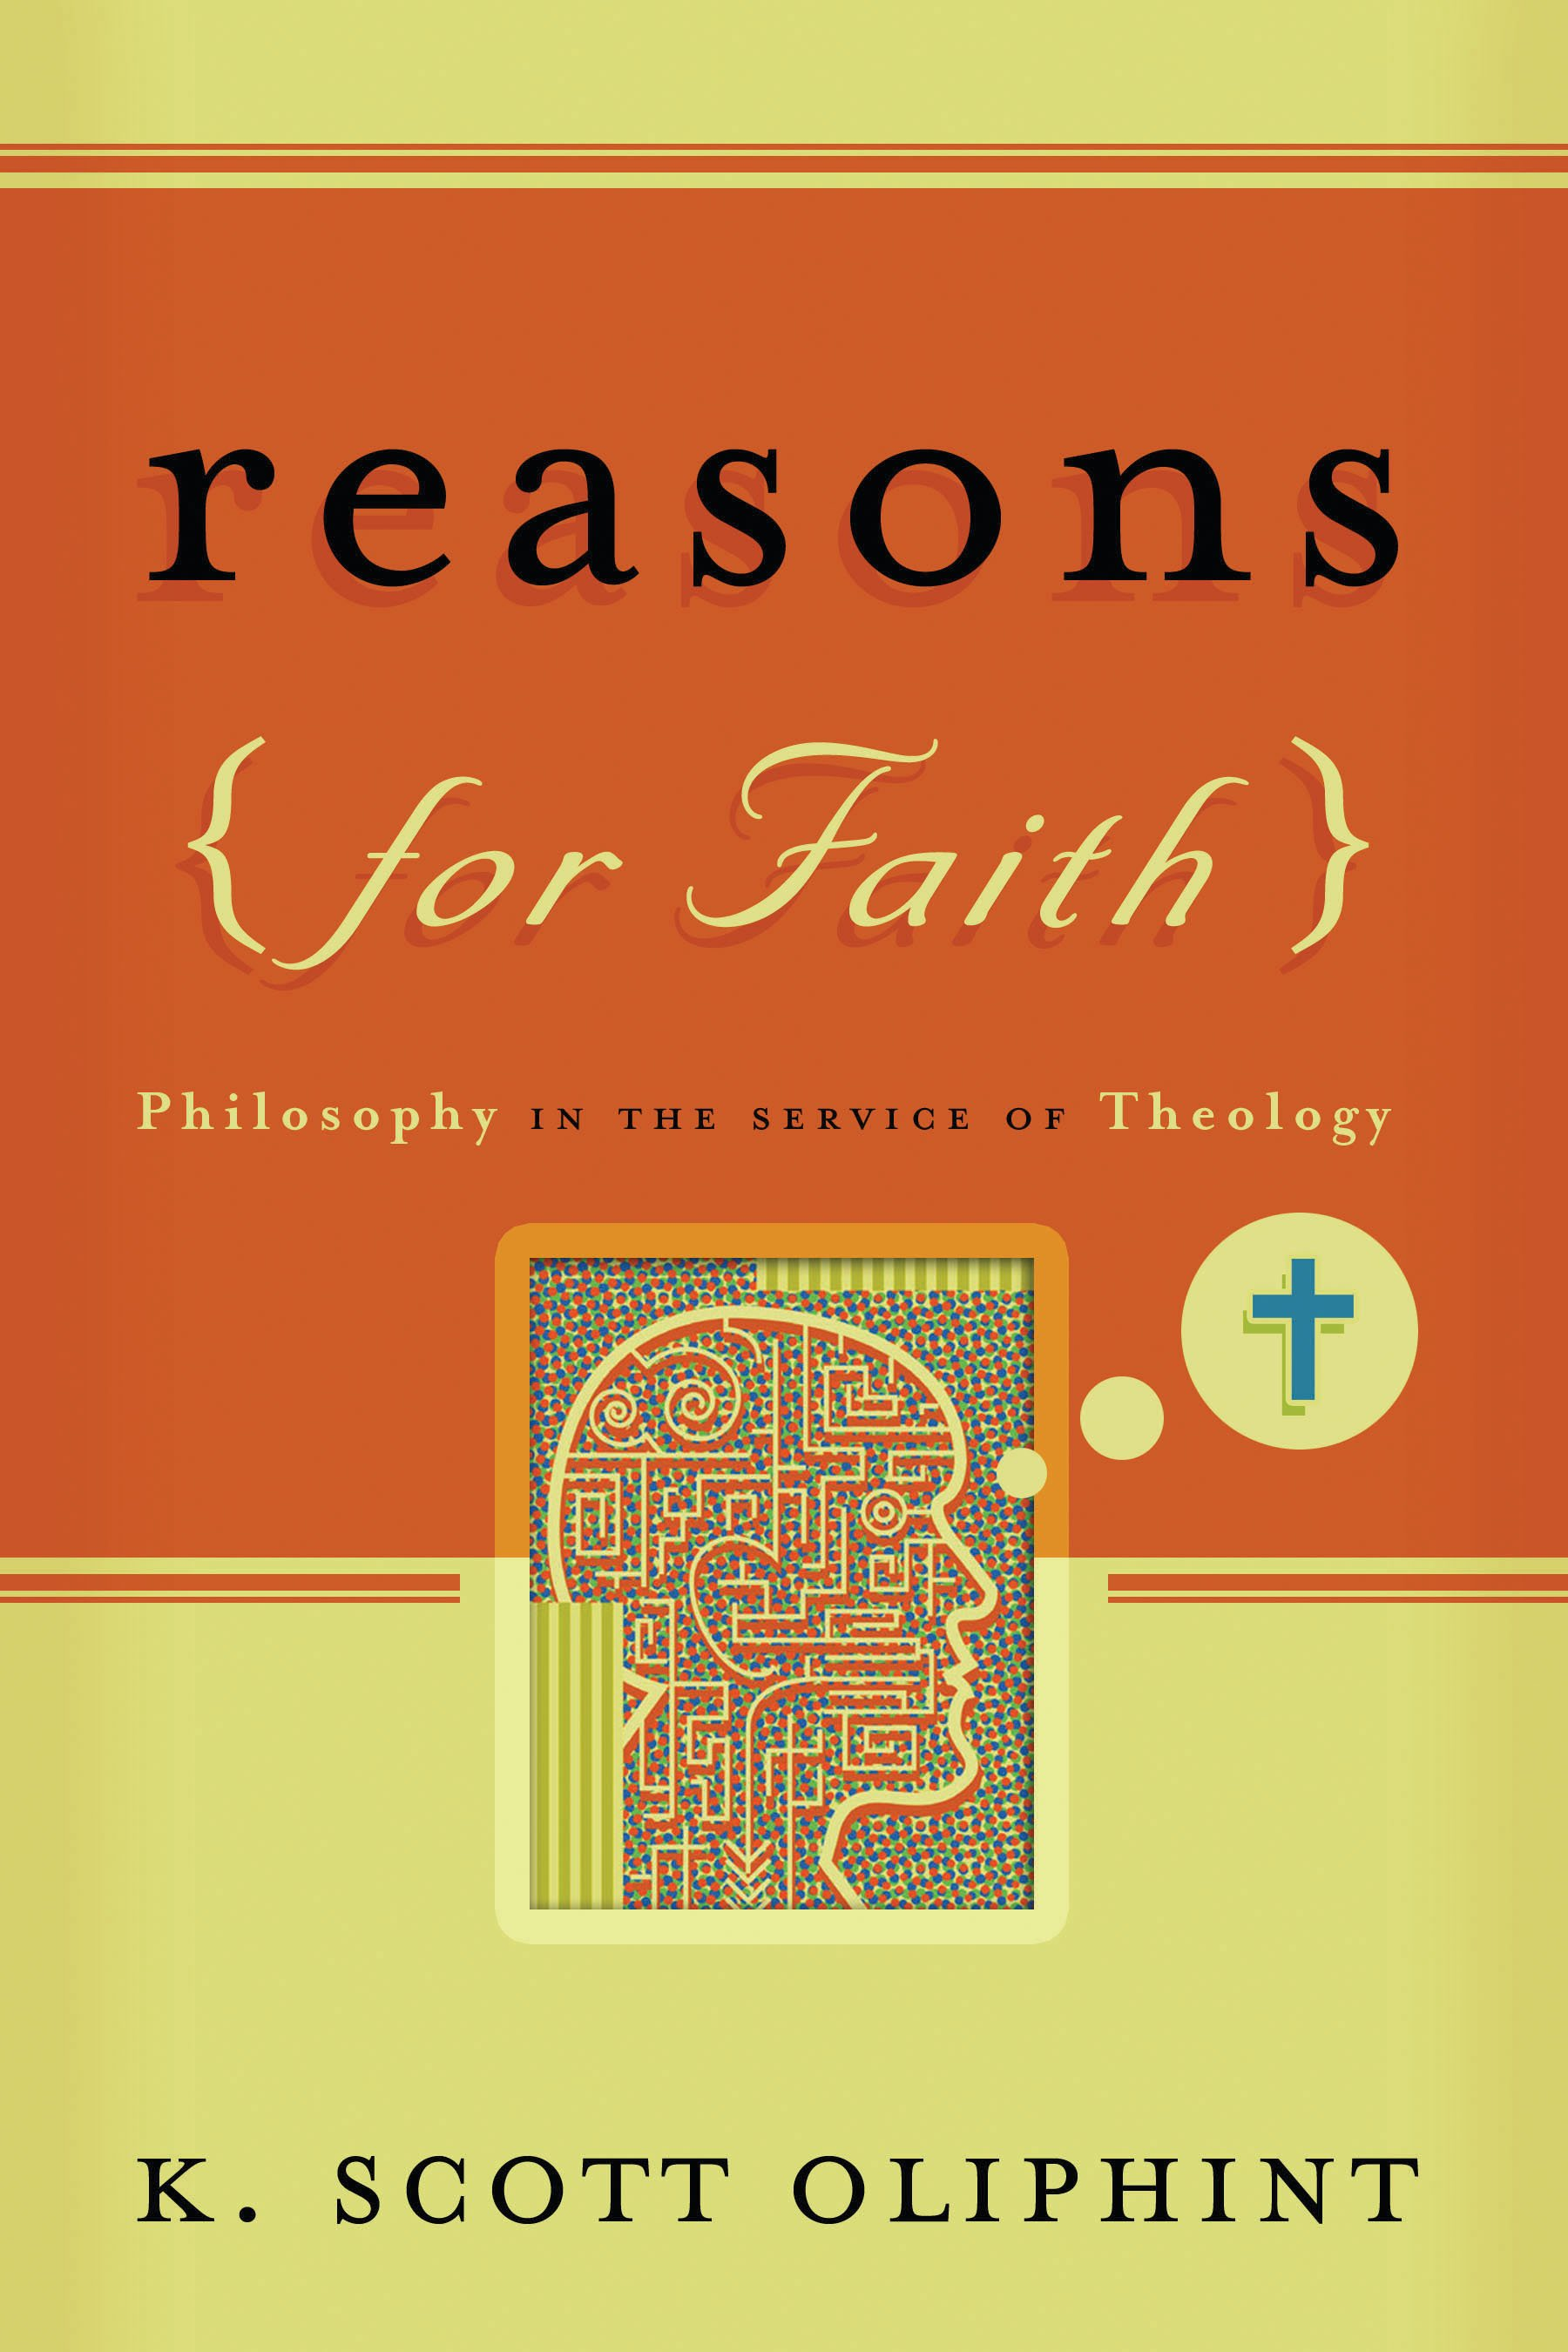 Reasons for Faith by K Scott Oliphint, ISBN: 9780875526454